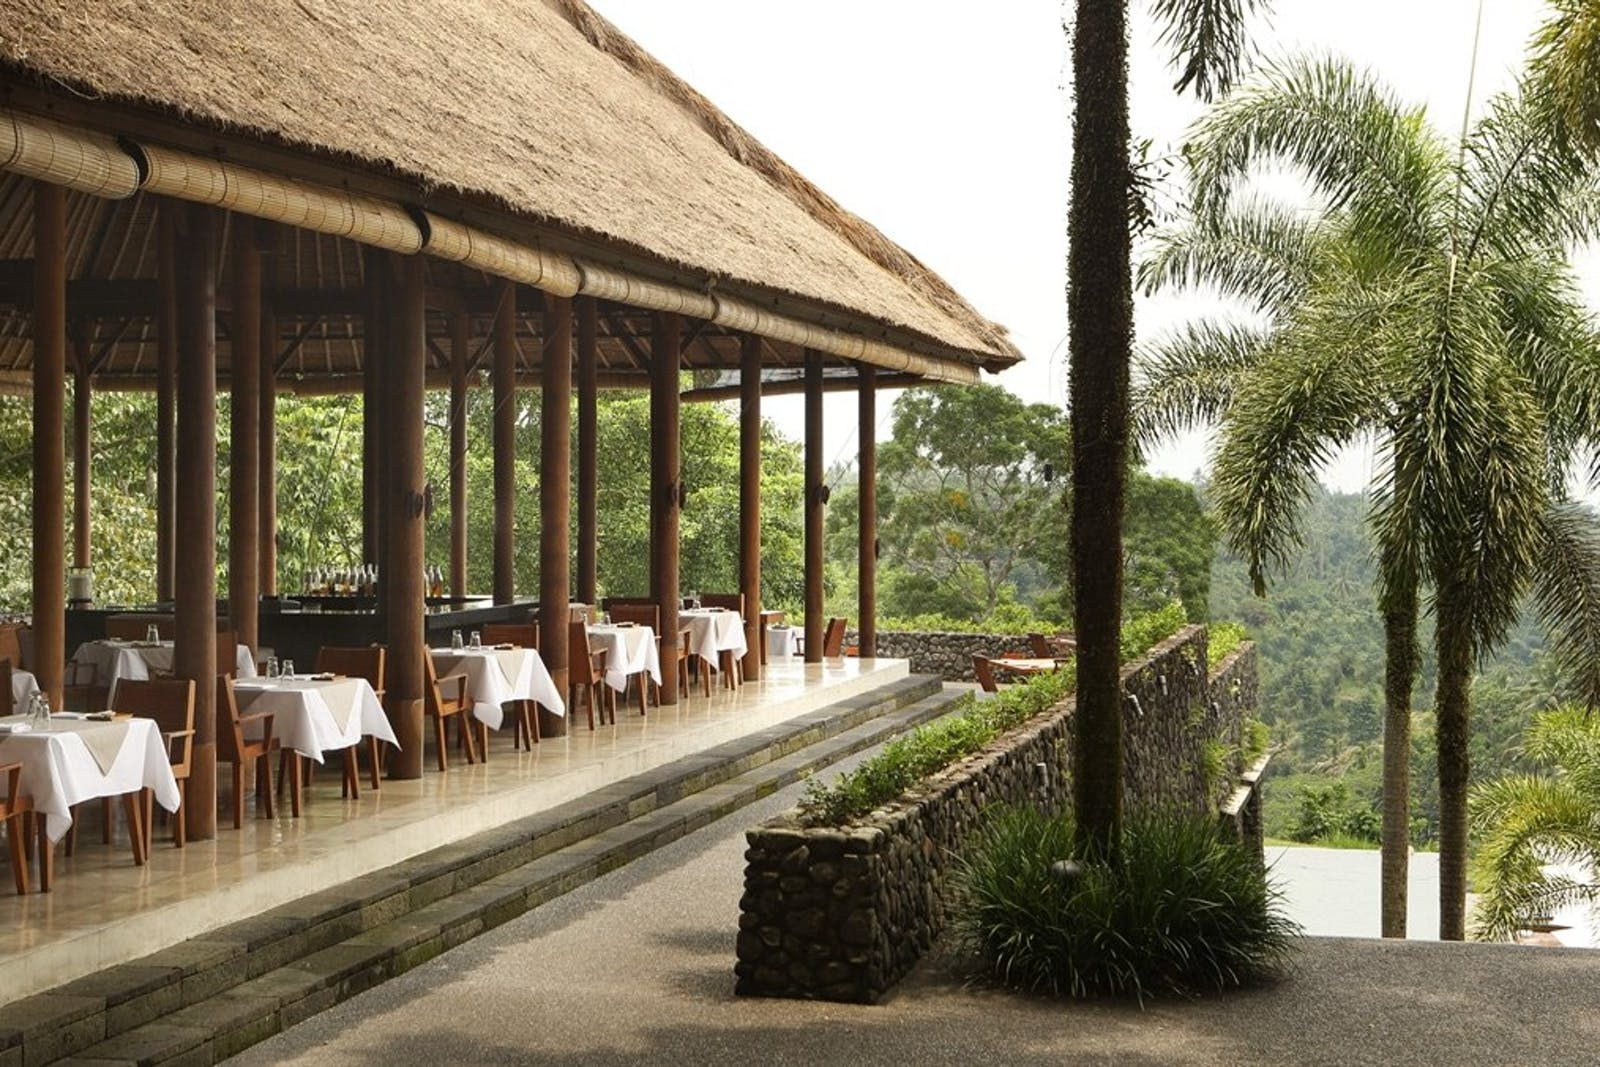 Plantation Restaurant at Alila Ubud, Bali